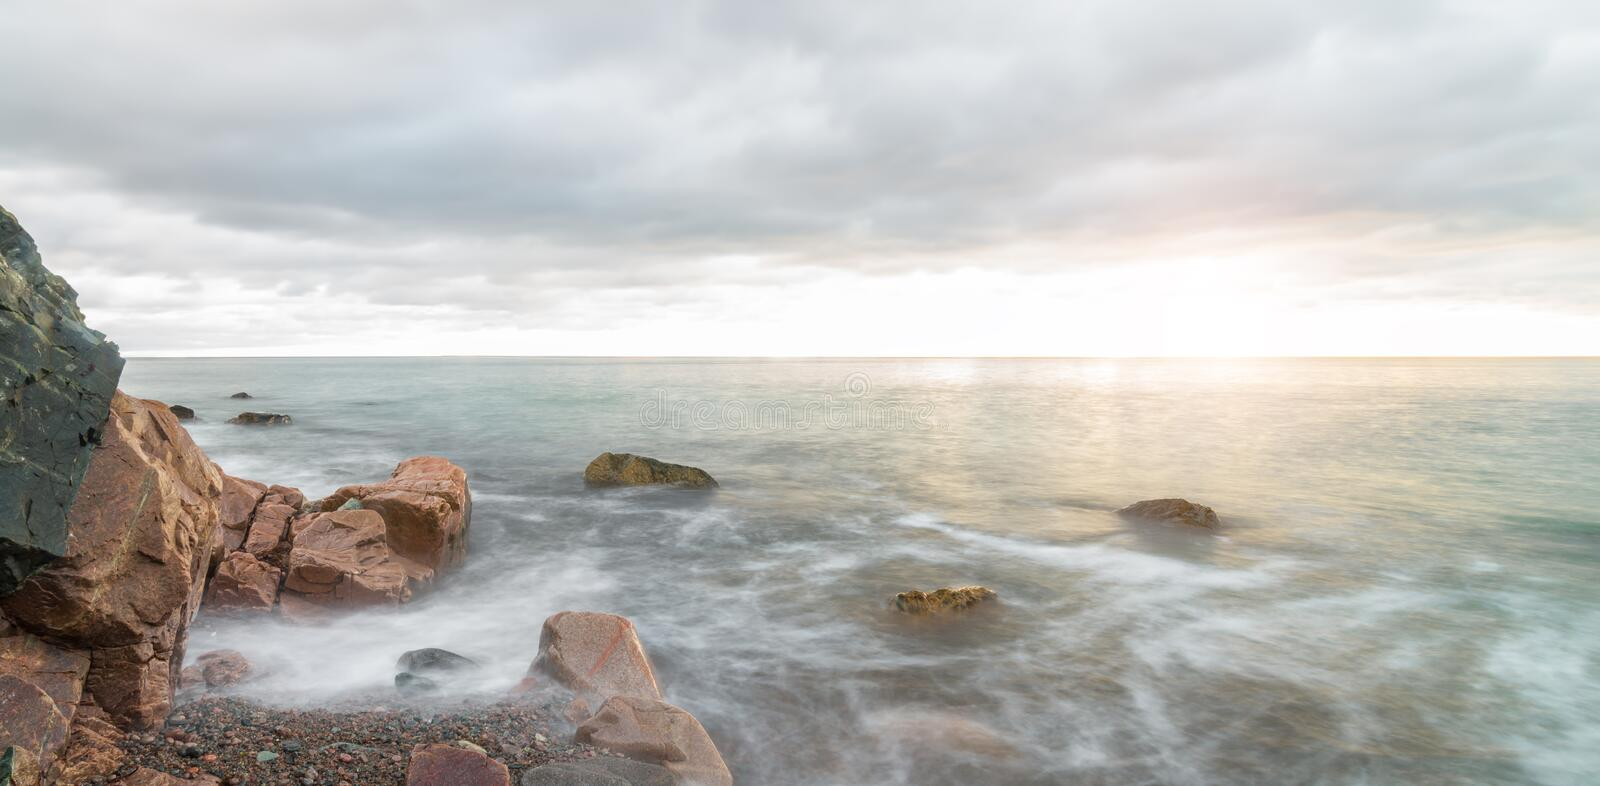 Panorama of ocean waves at sunrise - Long-exposure